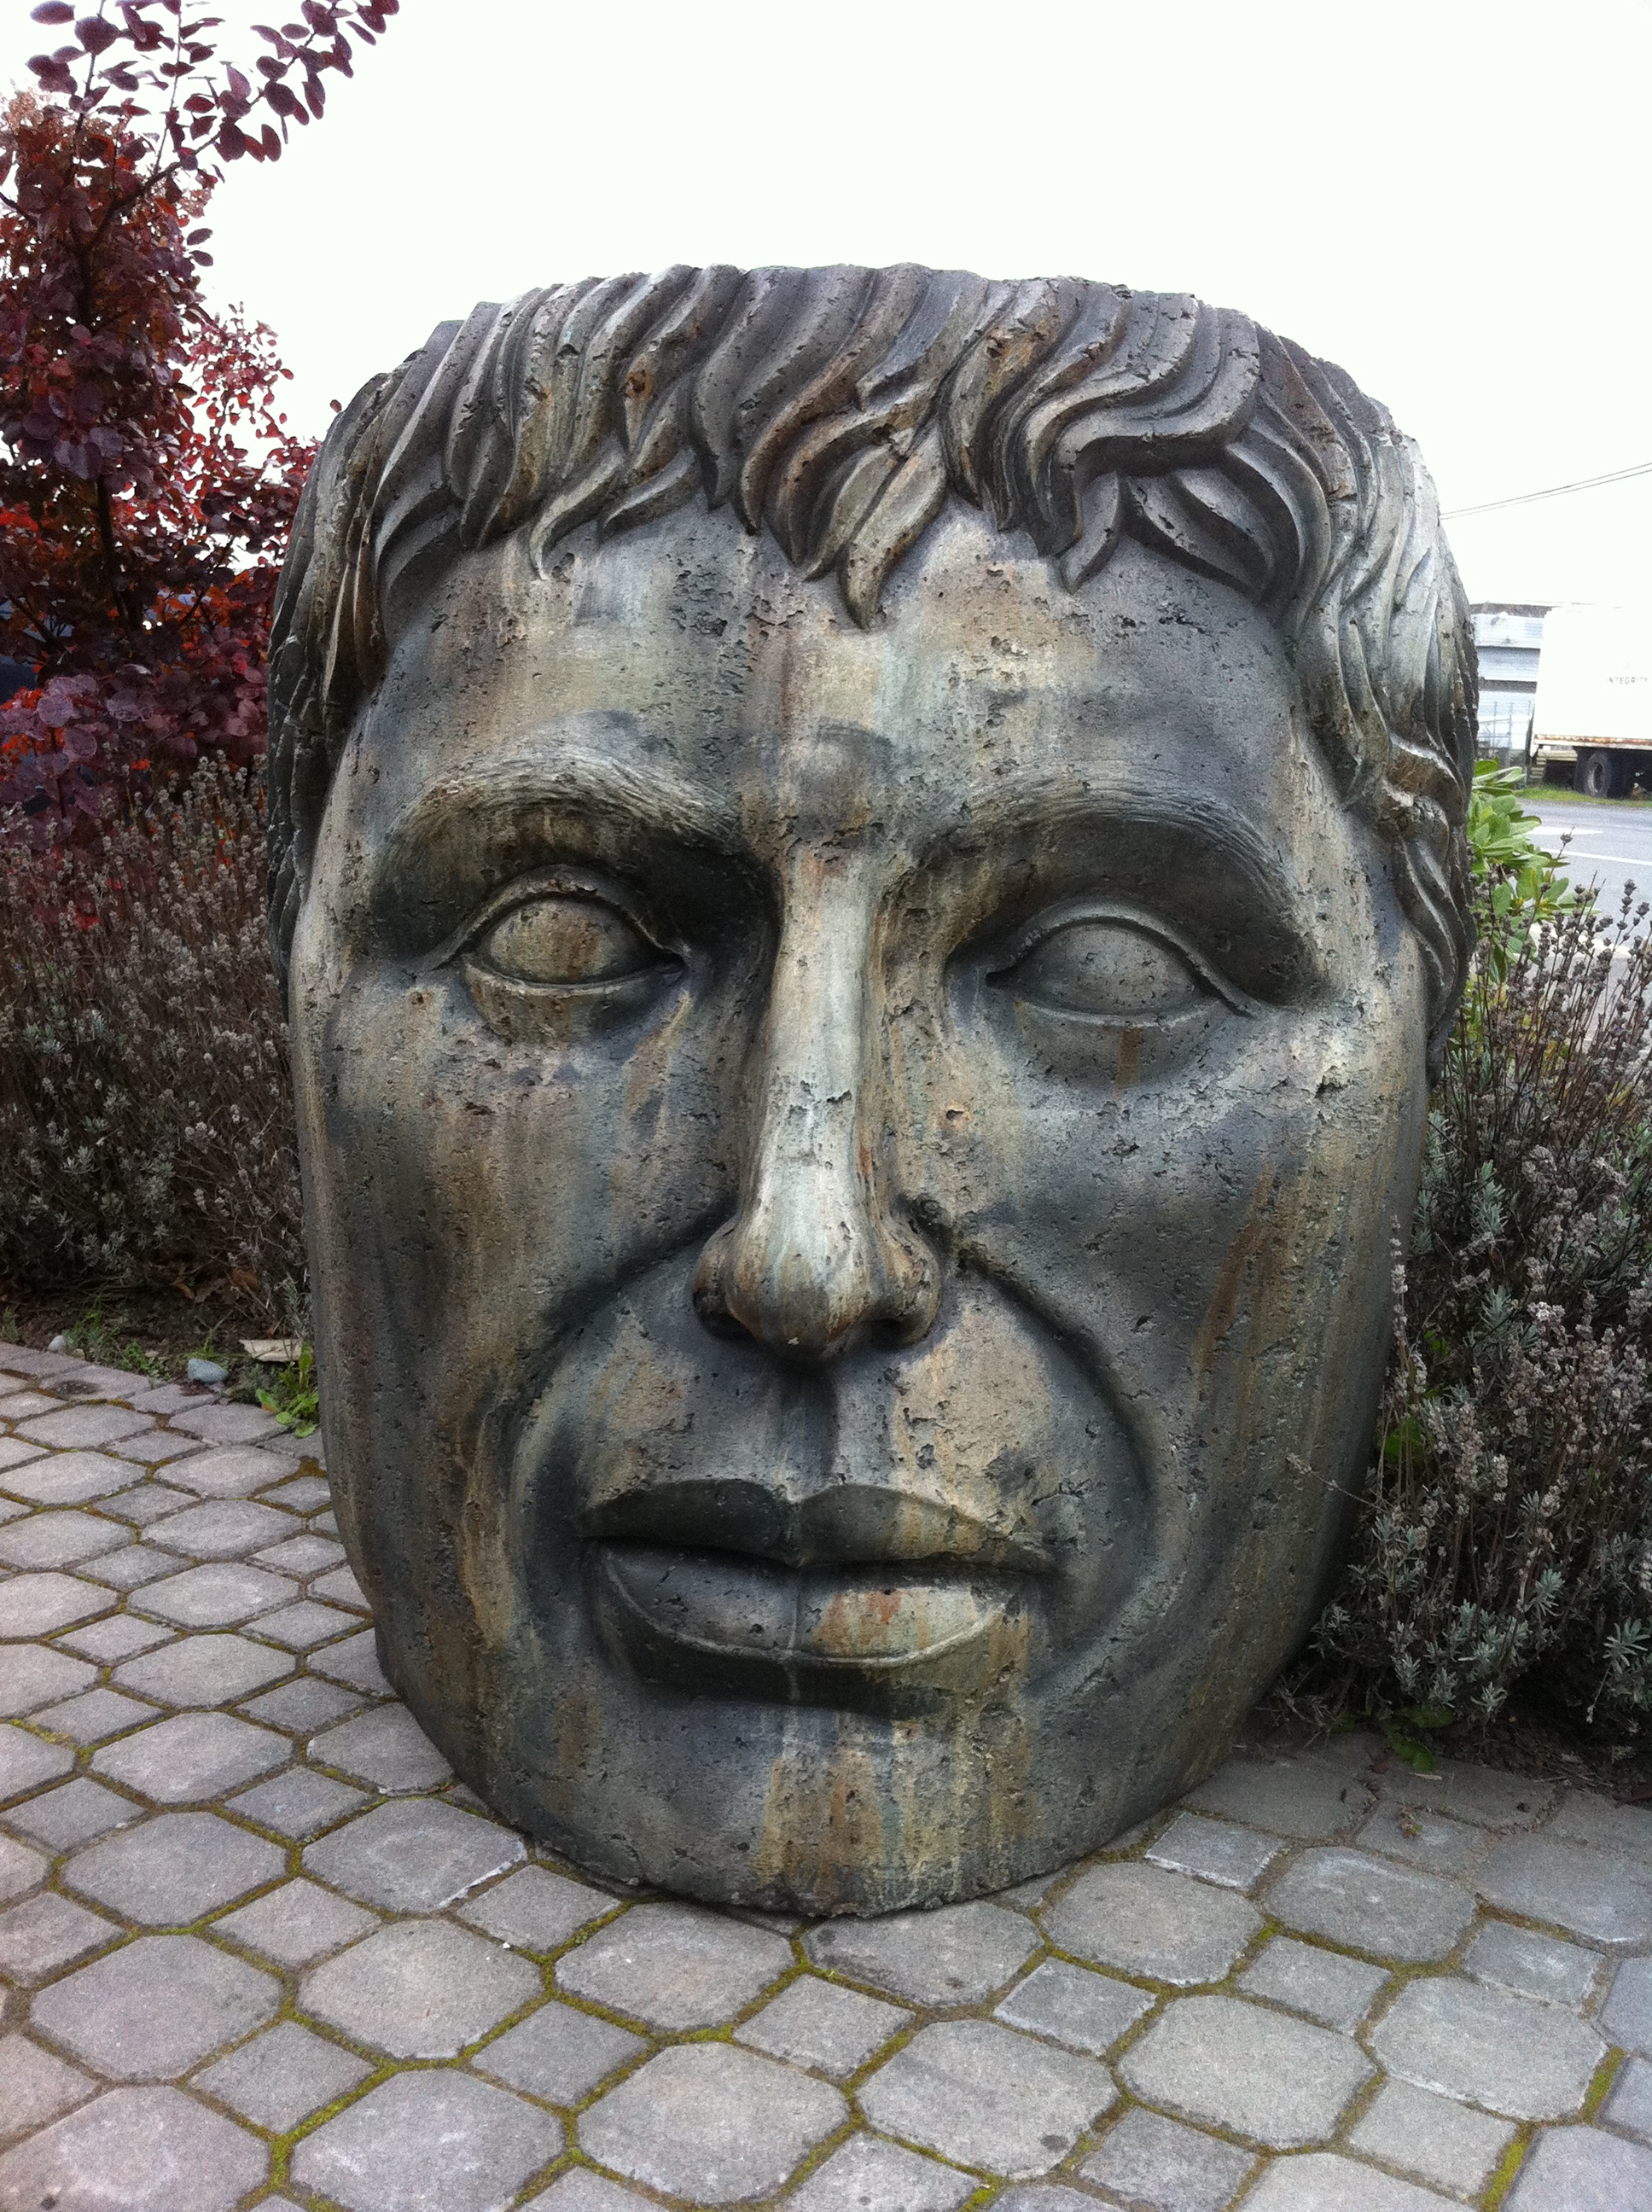 Giant Young Emperor stained concrete face statue for garden or patio